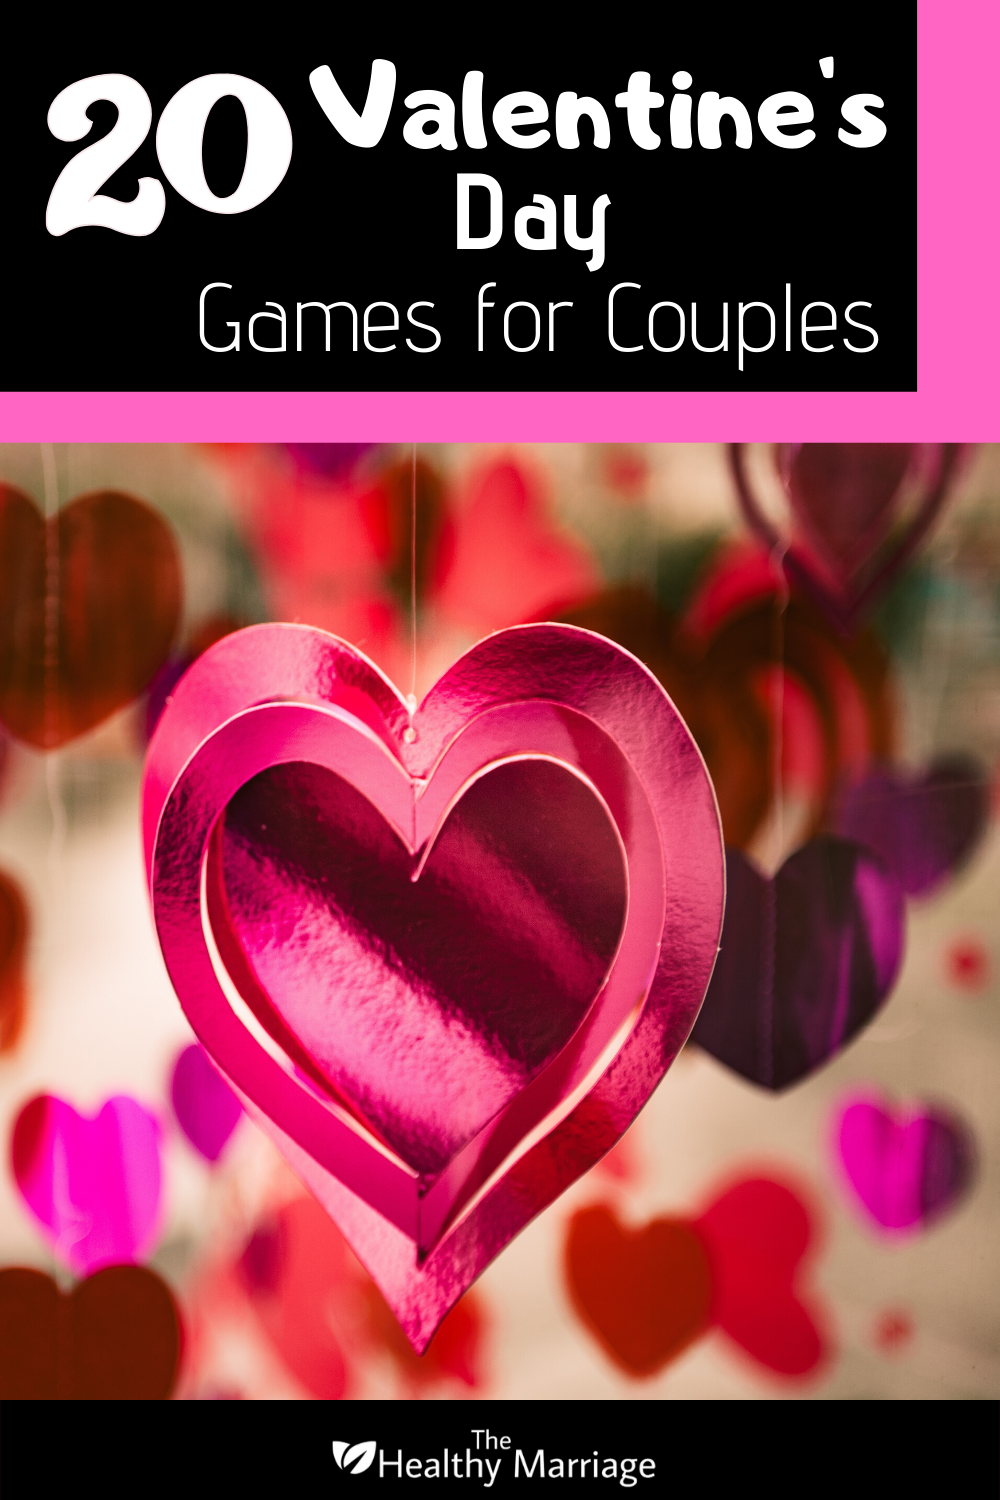 20 Valentine's Day Games for Couples in 2020 (With images